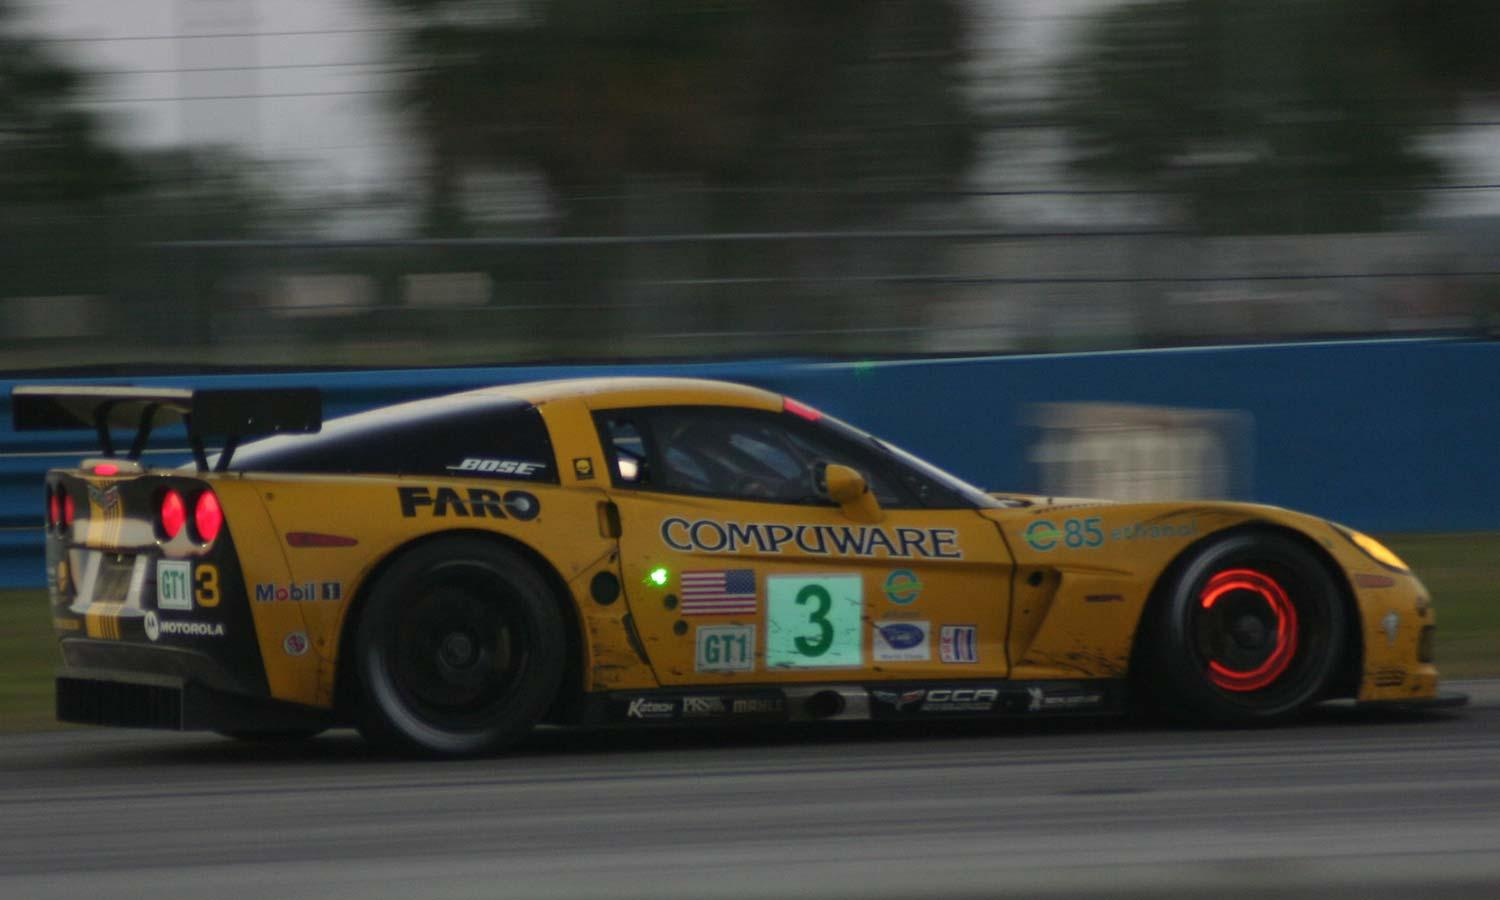 a yellow corvette with glowing brakes at the 2008 12 Hours of Sebring event